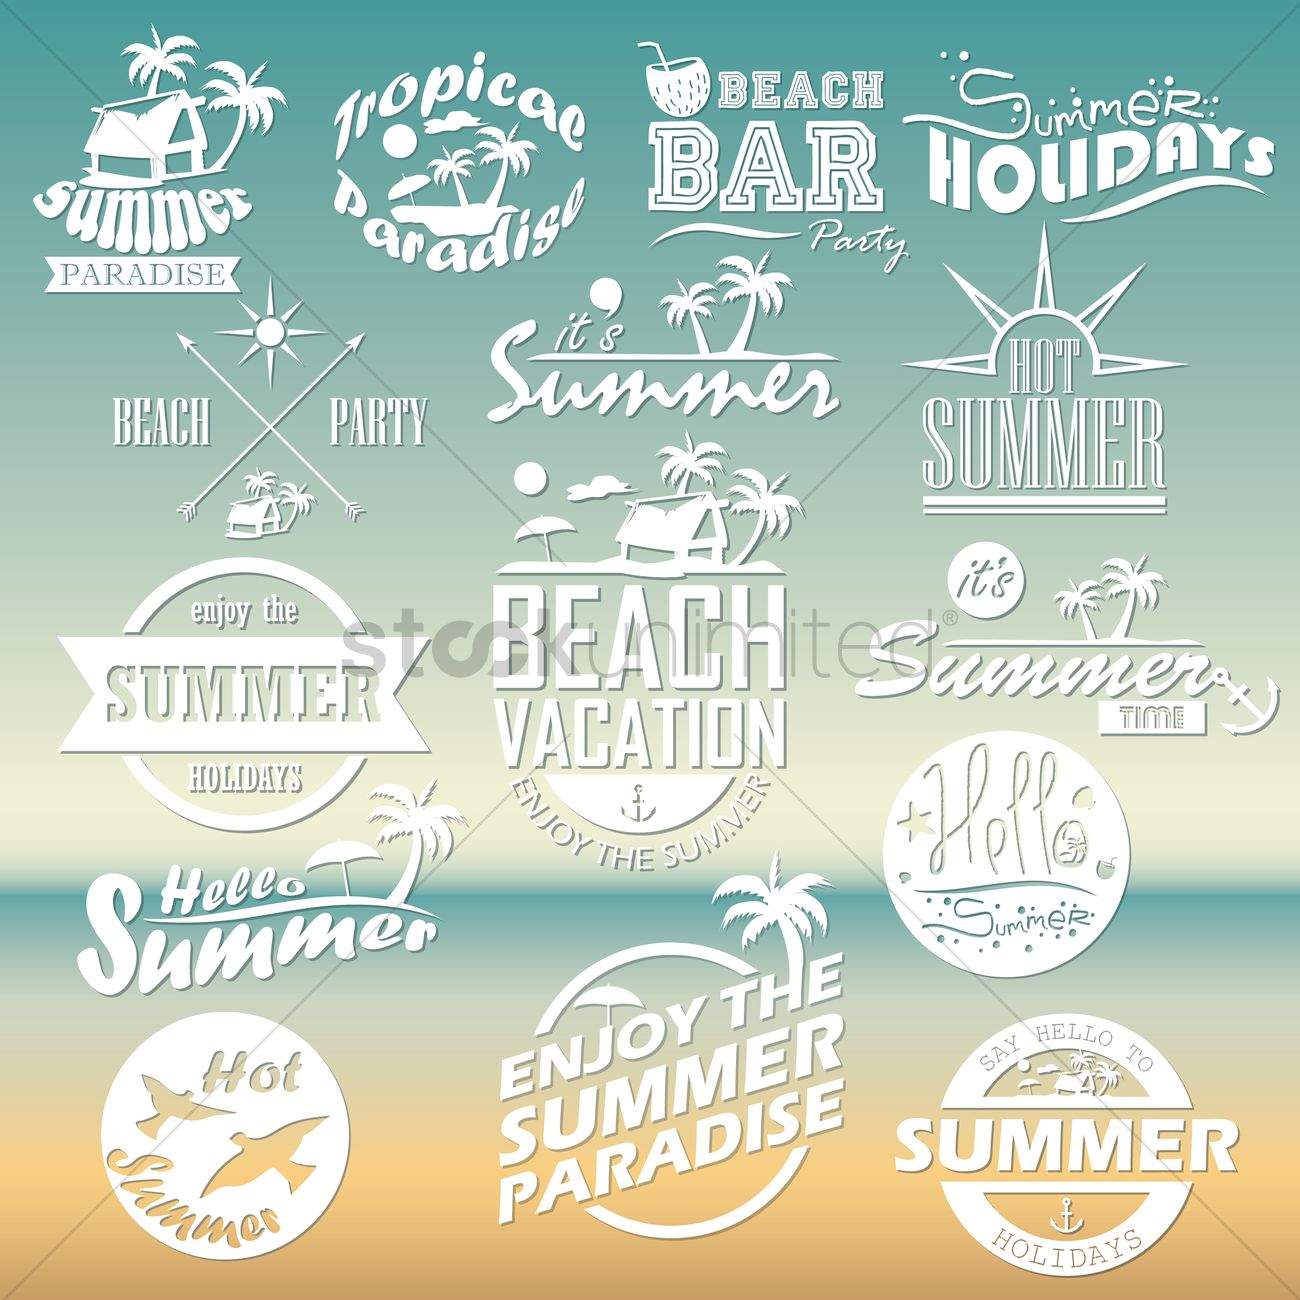 Set of summer holidays wallpapers vector image 1617856 set of summer holidays wallpapers vector graphic m4hsunfo